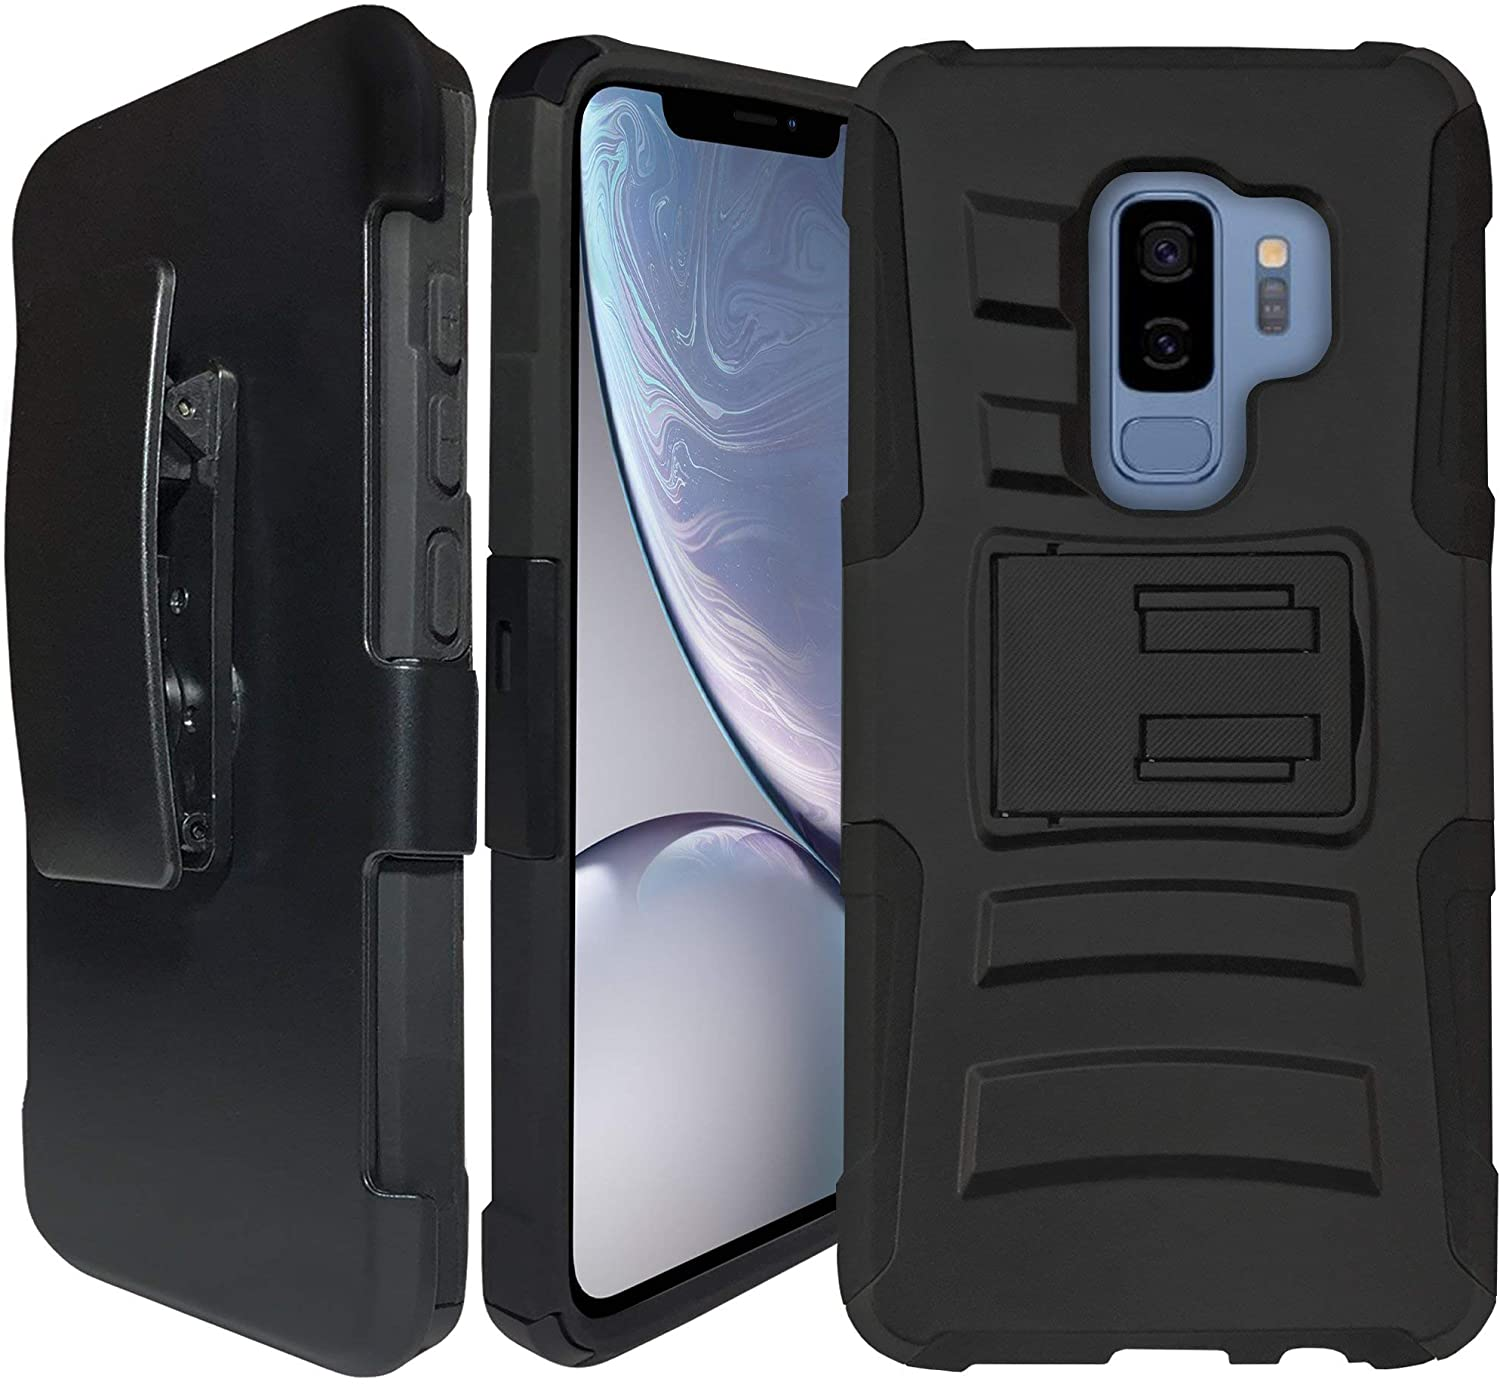 CasesonDeck Case for Samsung Galaxy S9+ / S9 Plus - Clip Combo Case, Dual Layer, Built in Kickstand Holster (Black)